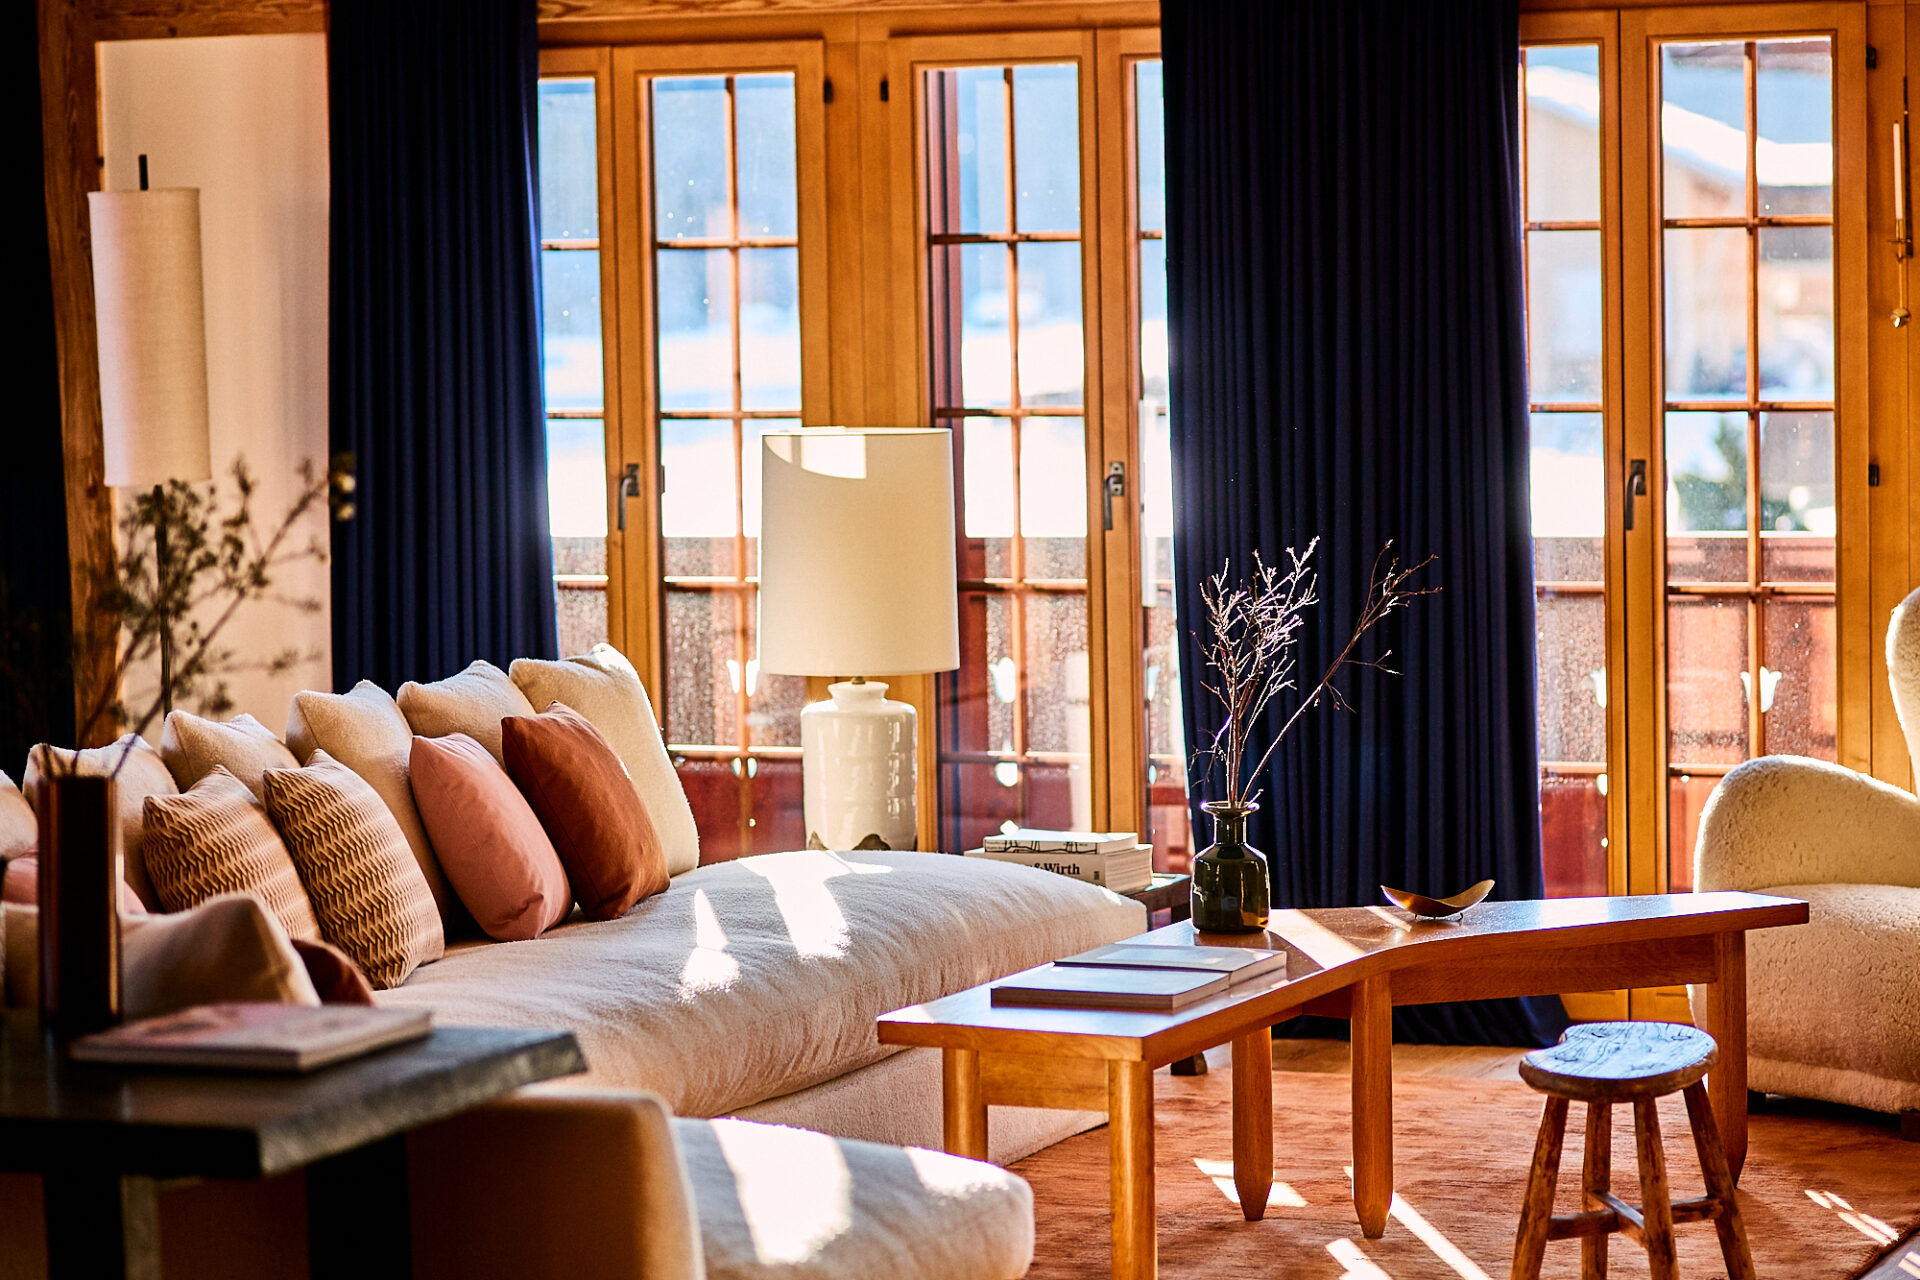 An apartment for a lady in Gstaad. — Casa Muñoz casa muÑoz CASA MUÑOZ: A LUXURIOUS INTERIOR STUDIO FROM MADRID GM GSTAAD  169 1 1920x1280